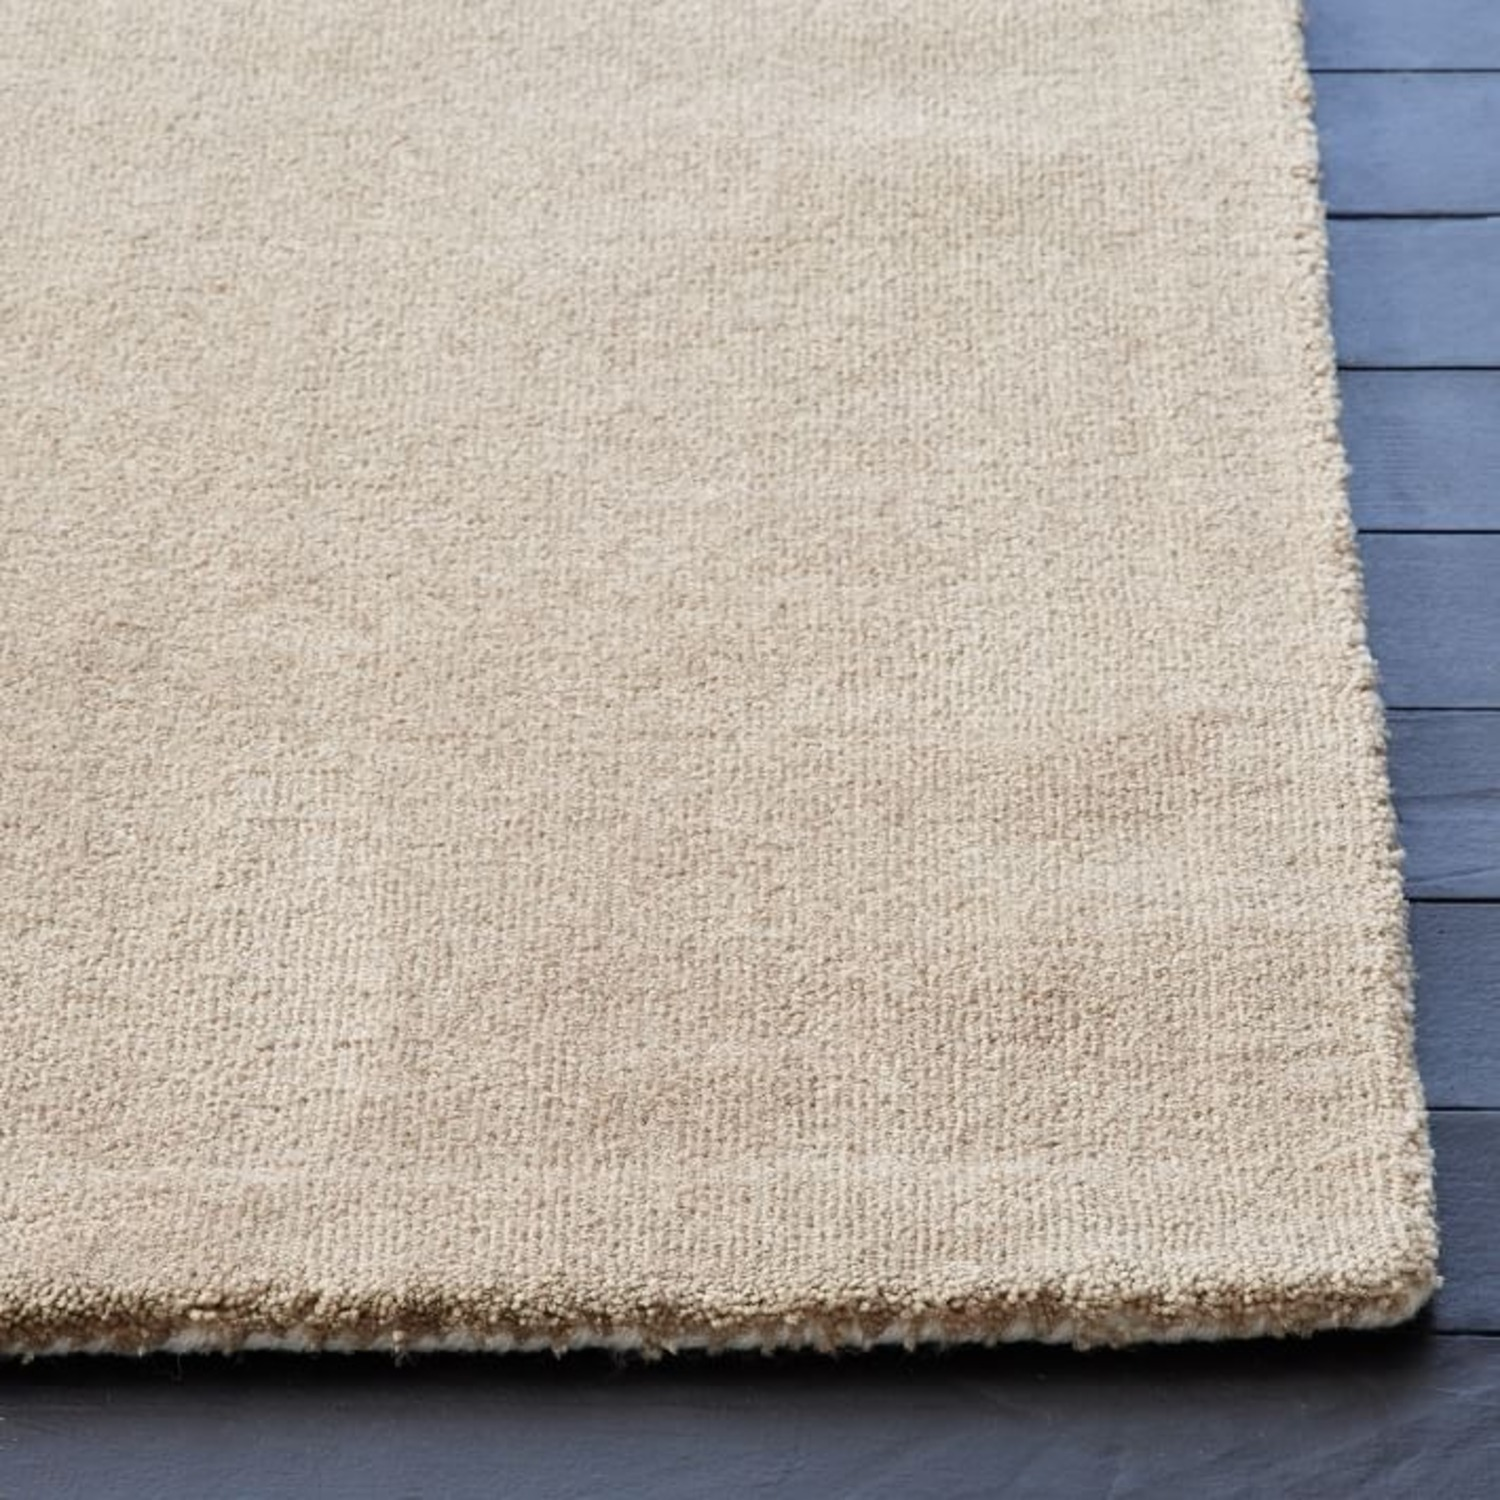 West Elm Area Rug 5' x 8' Frost Gray + Yellow - image-6